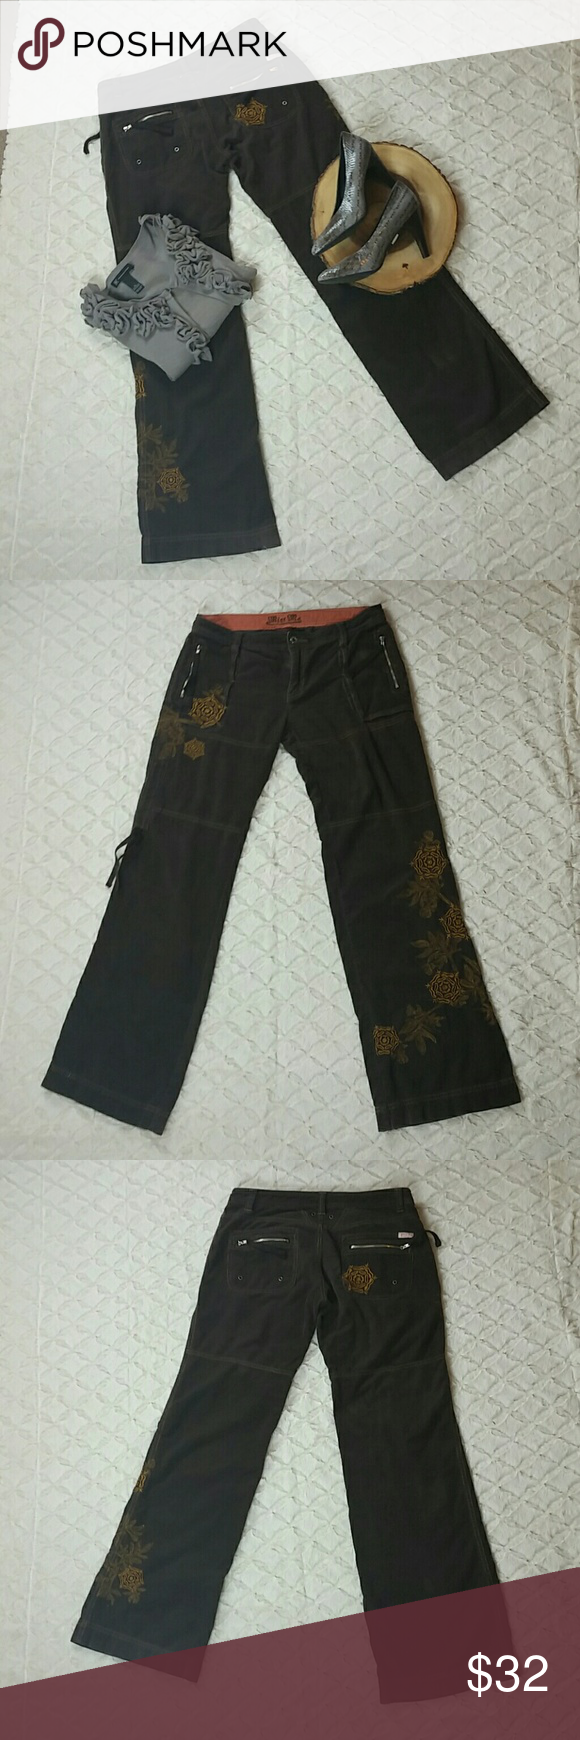 """Brown embroidered corduroy Miss Me Pants Gorgeous pants by Miss Me  Brown  Corduroy  Embroidered  MISSING BOTTOM LACES TO COVERT INTO CAPRIS  Measurements: (taken with item laying flat)  Length: 40"""" or 101.60 cm (waist to hem)  Waist: 16.5"""" or 41.91 cm  Hips: 20"""" or 50.80 cm  Rise: 8.5"""" or 21.58 cm Inseam: 33"""" or 83.82 cm Miss Me Pants Boot Cut & Flare"""